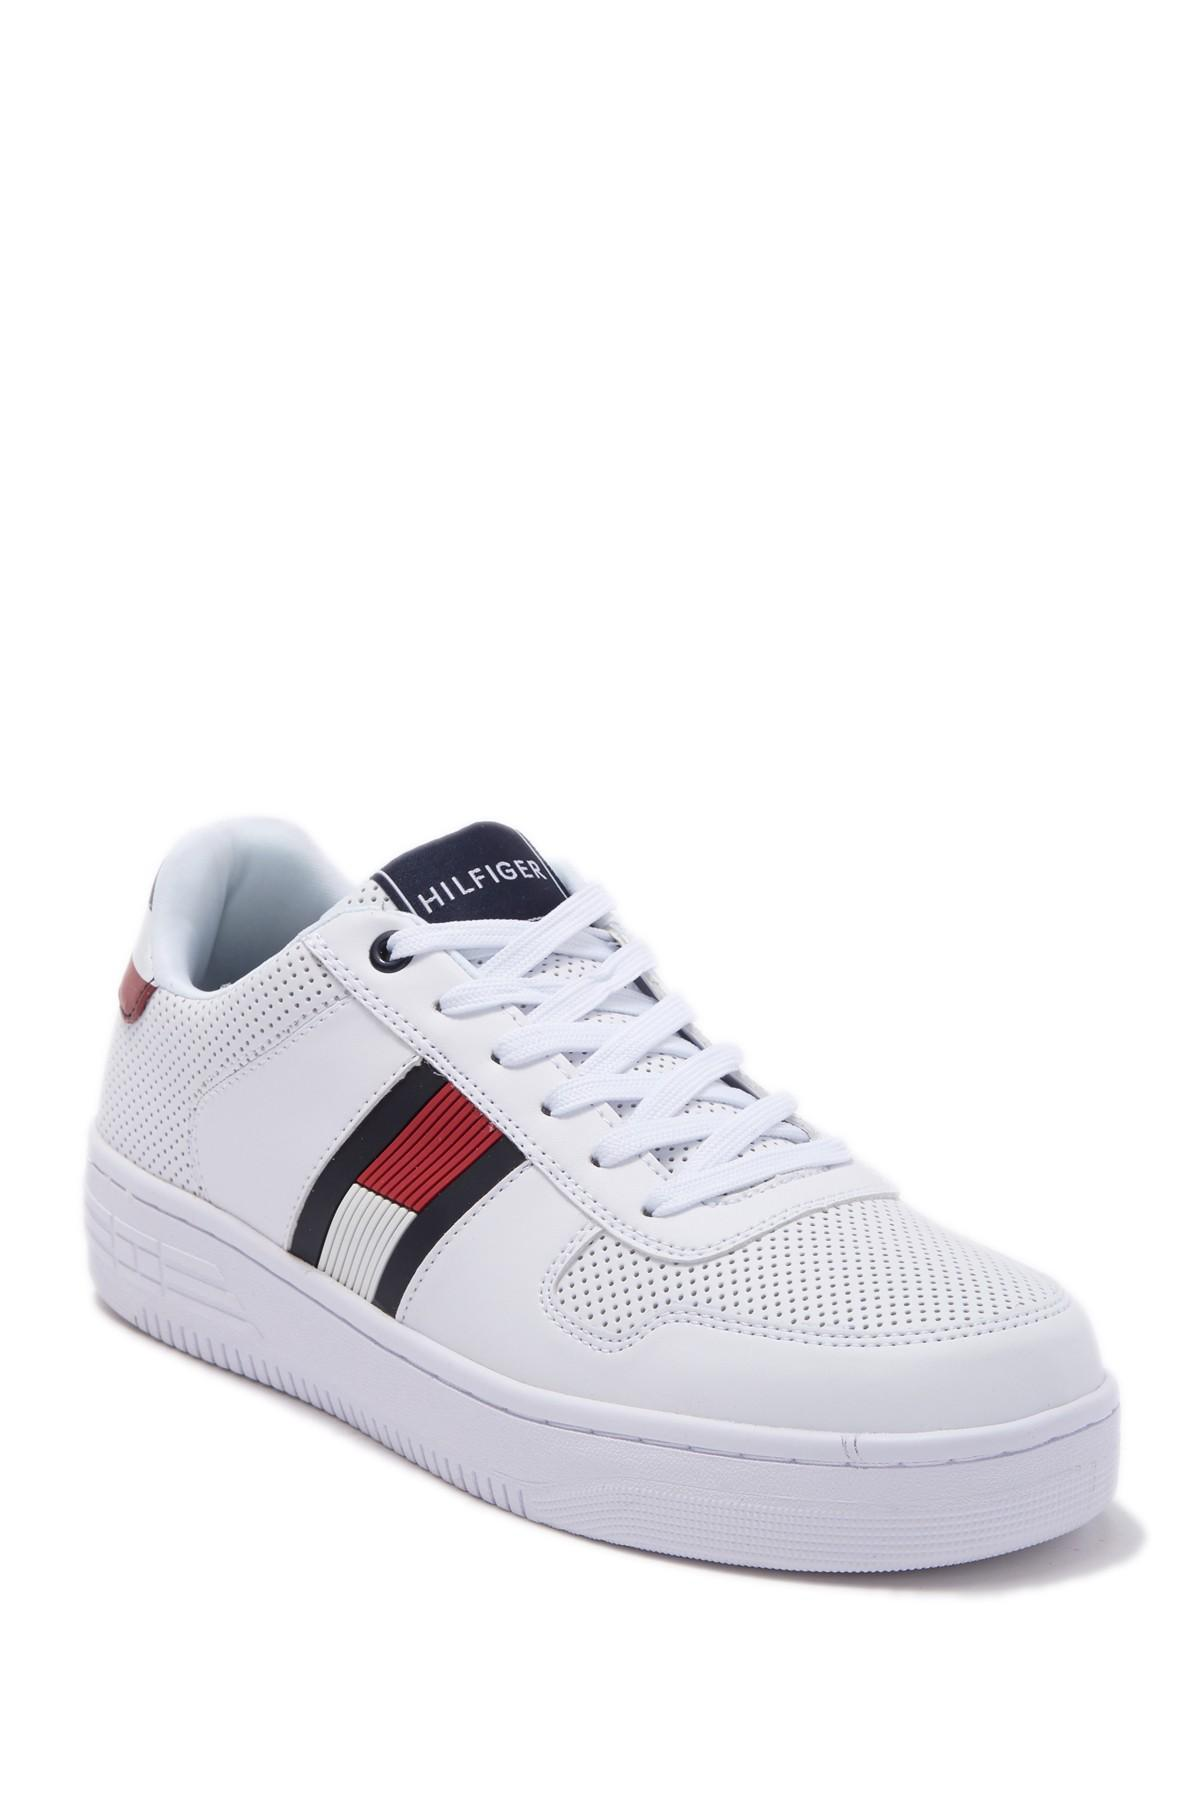 Tommy Hilfiger Fallop Lace-up Sneaker